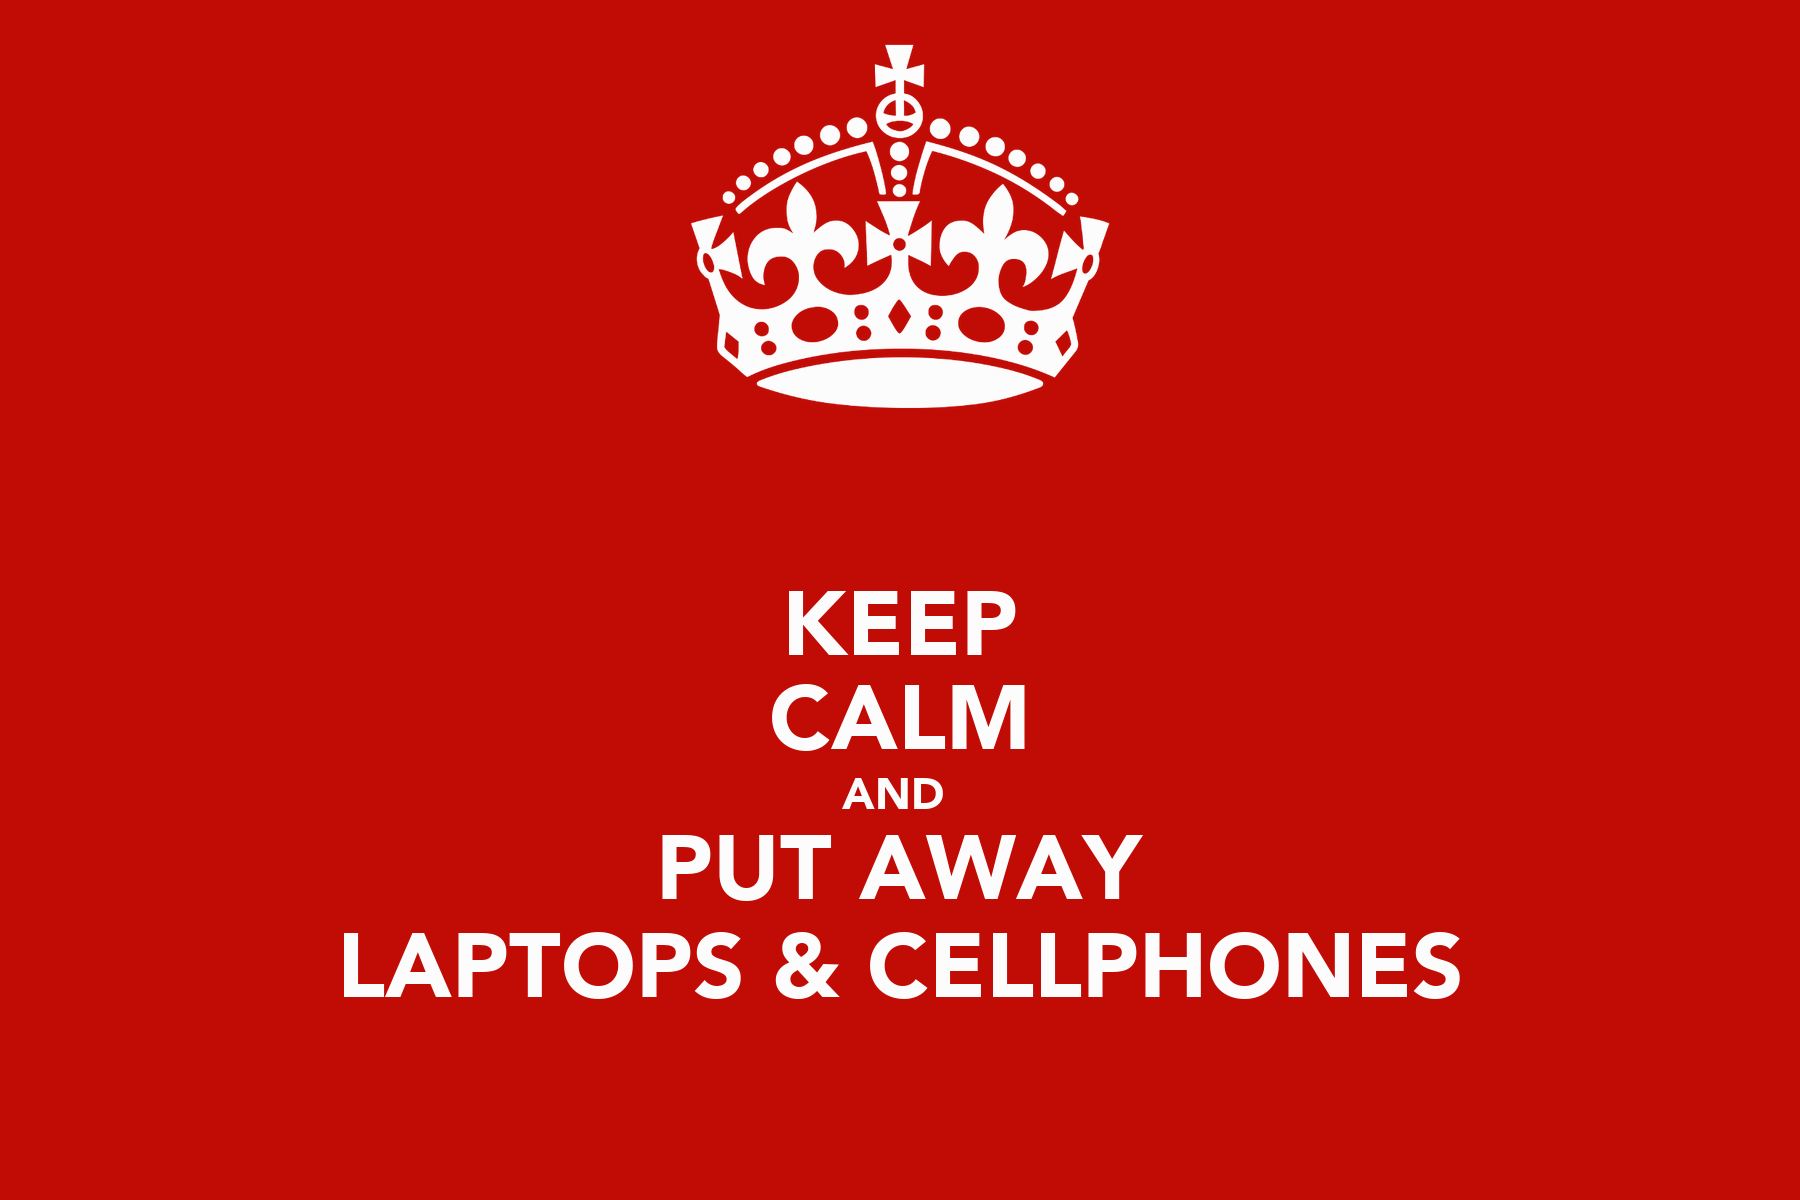 KEEP CALM AND PUT AWAY LAPTOPS u0026 CELLPHONES - KEEP CALM AND CARRY ON ...